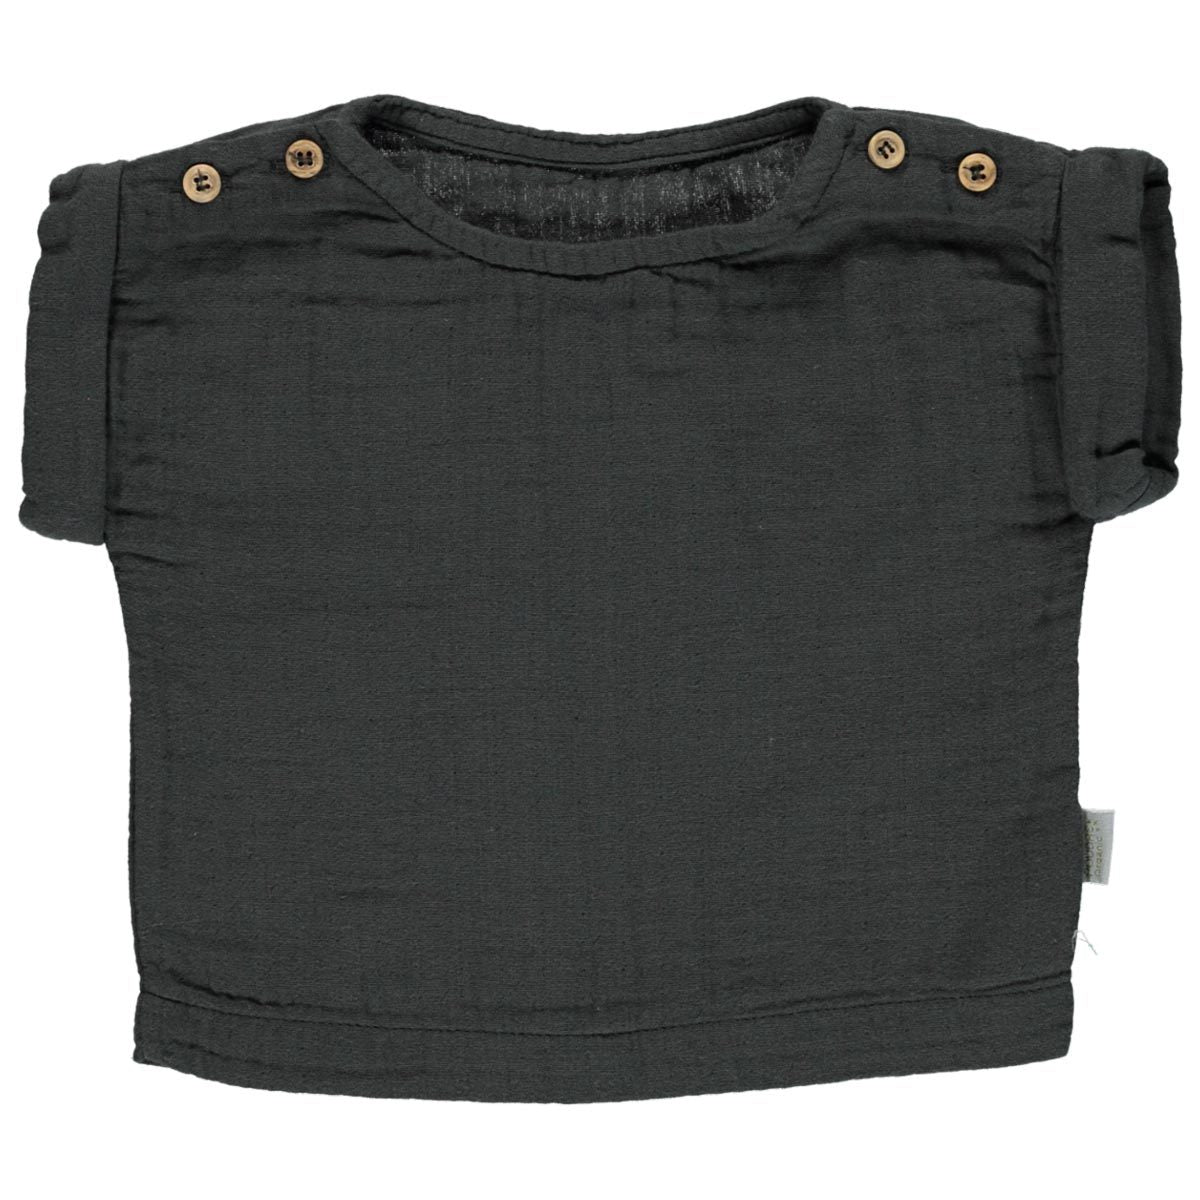 Tricou Poudre Organic din muselina - Pirate Black-Poudre Organic-HipHip.ro